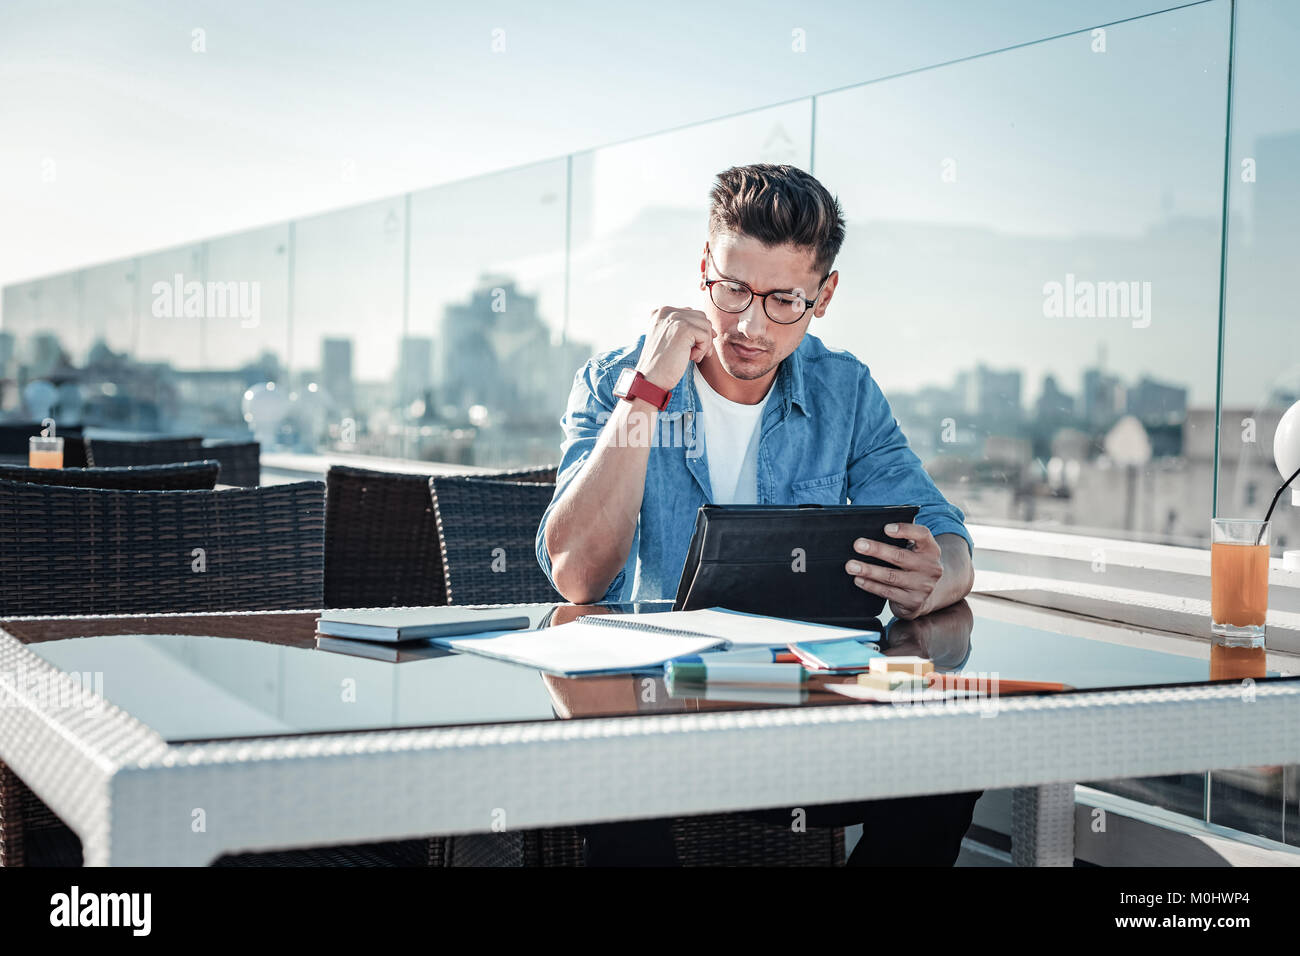 Focused young man working on touchpad in cafe - Stock Image